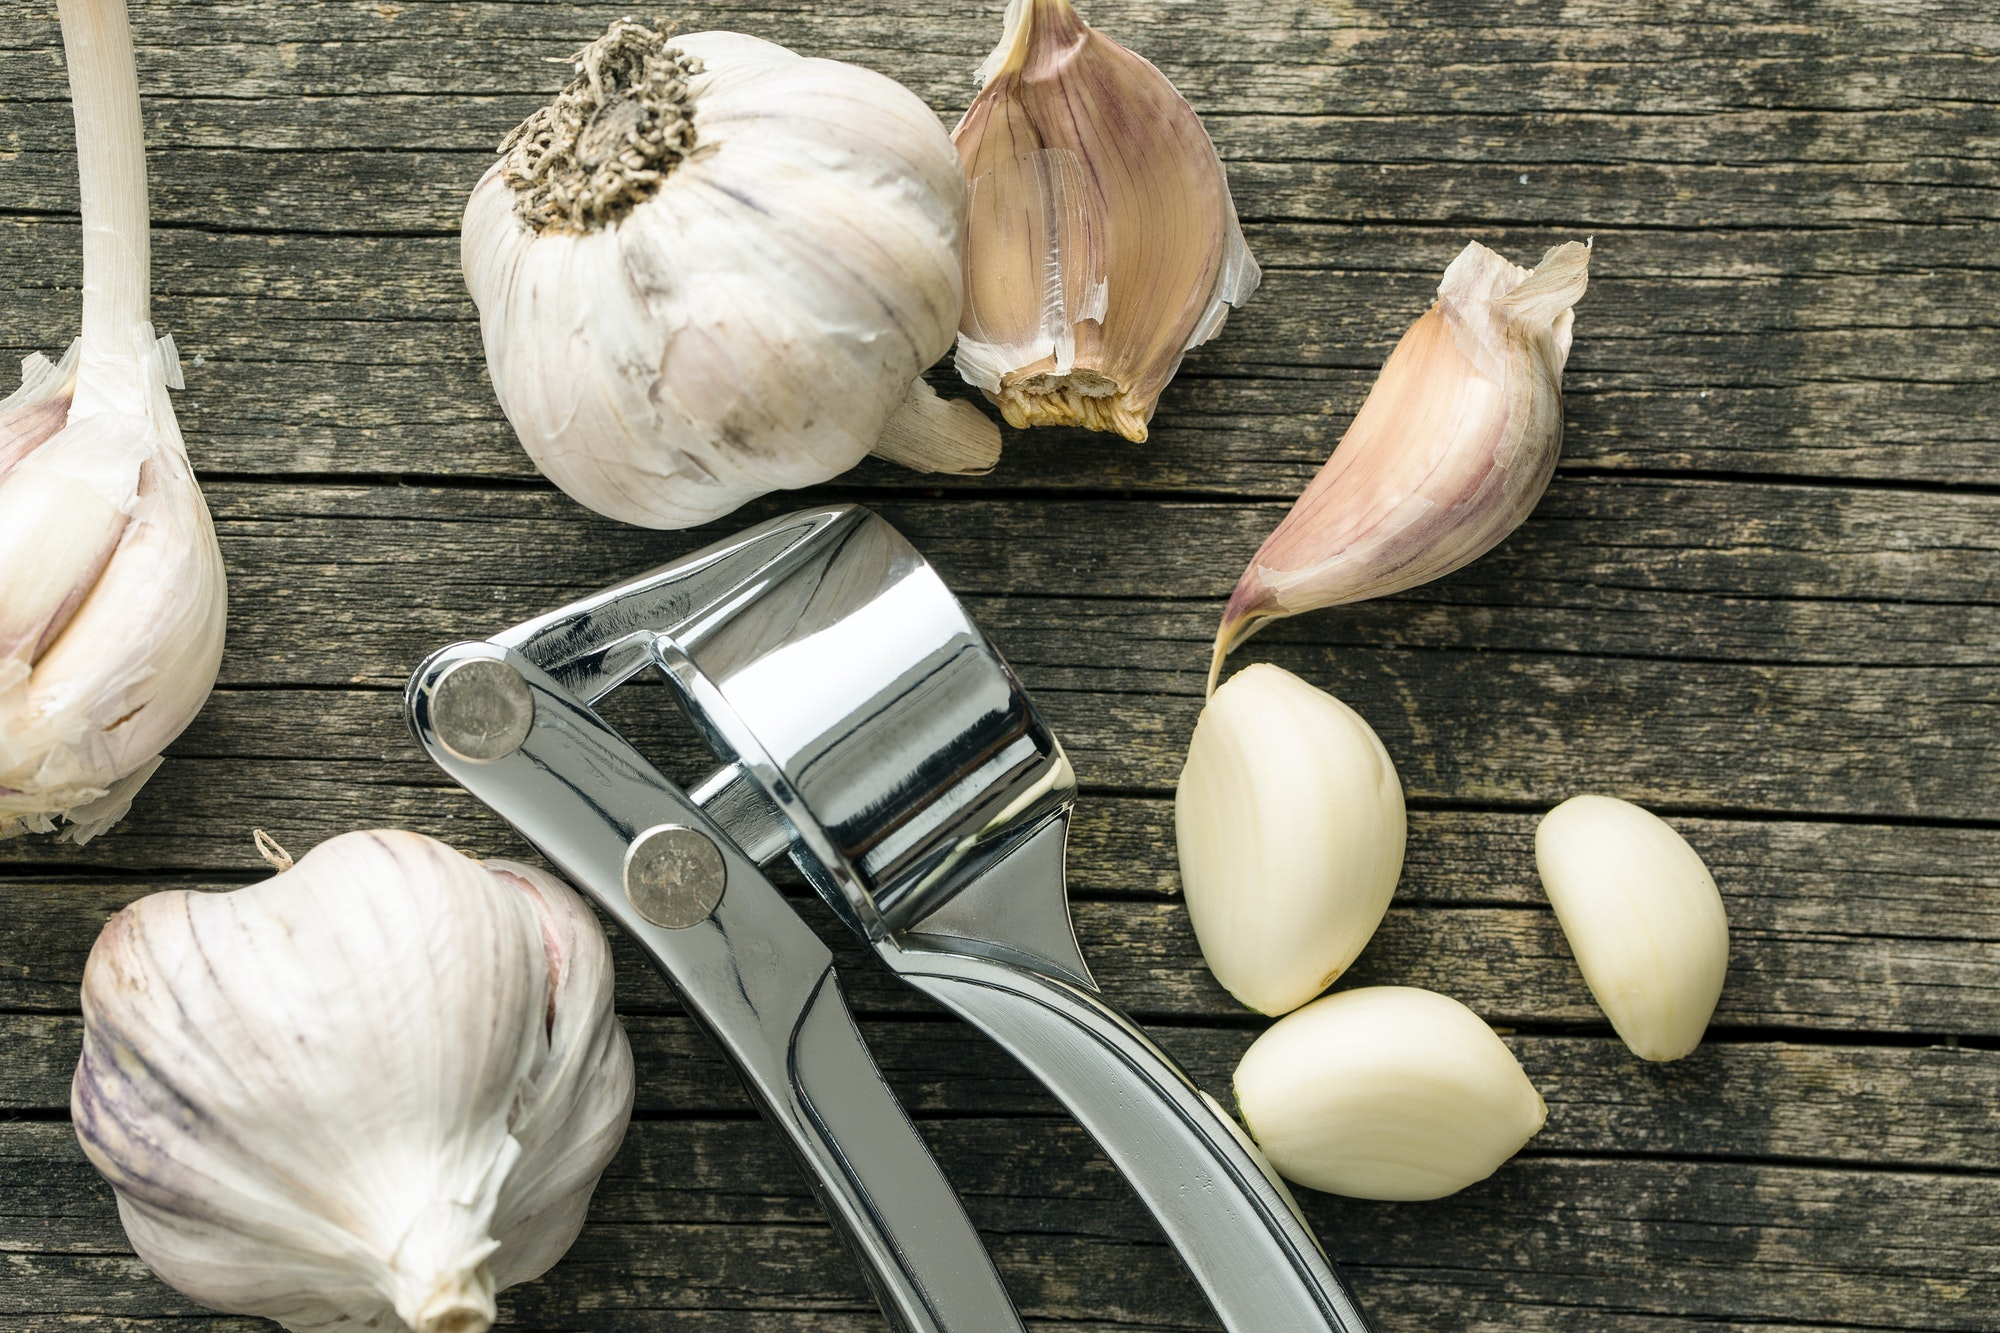 Garlic and garlic press.